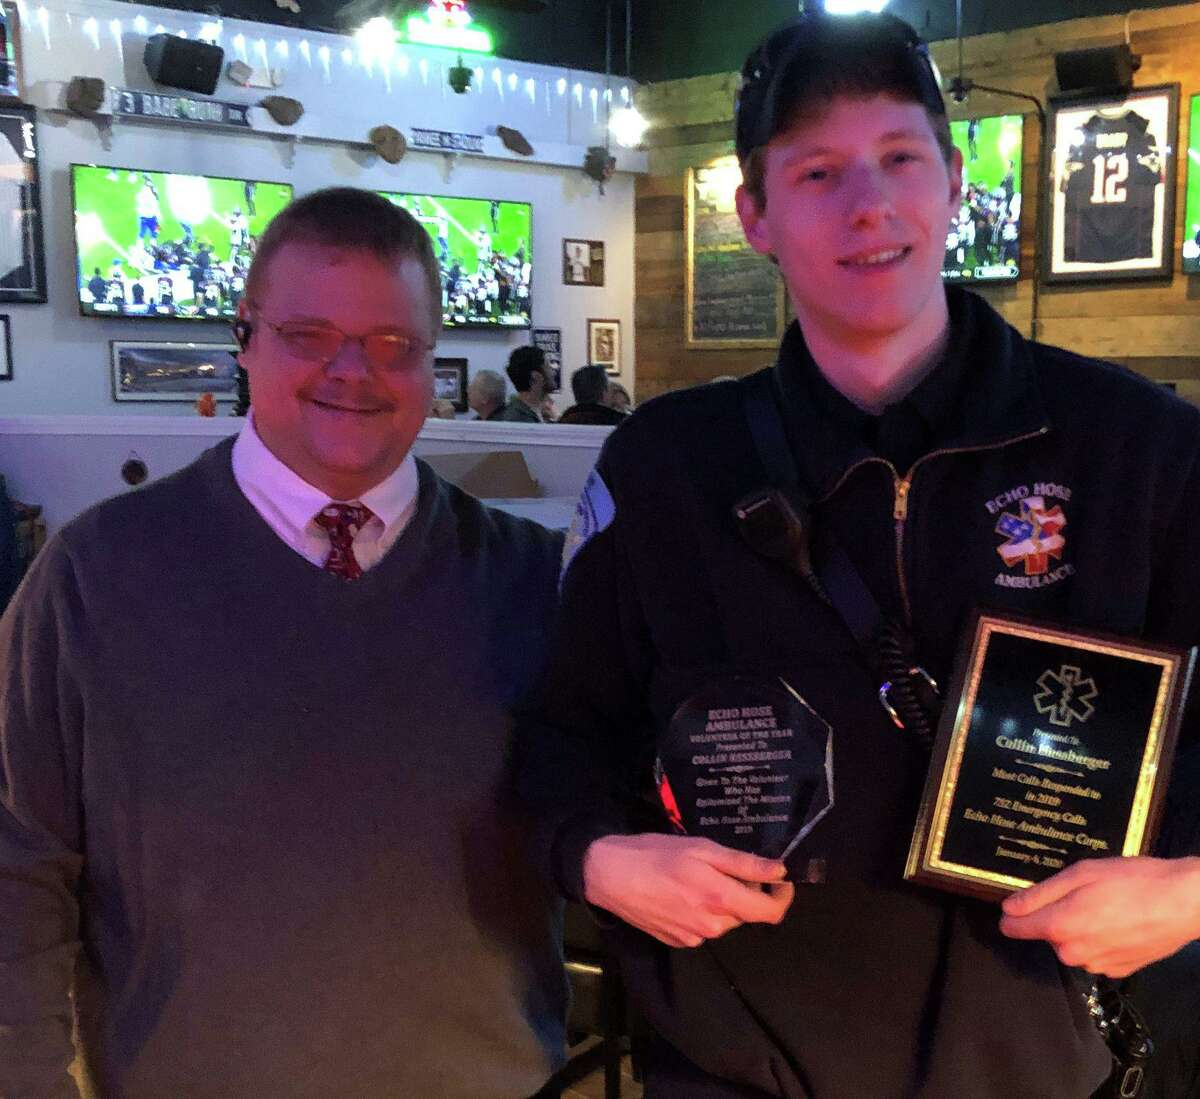 Collin Hessberger, right, has been named Echo Hose Ambulance Corps 2019 Volunteer of the Year. With Hessberger is Echo Hose Ambulance Chief Michael Chaffee.